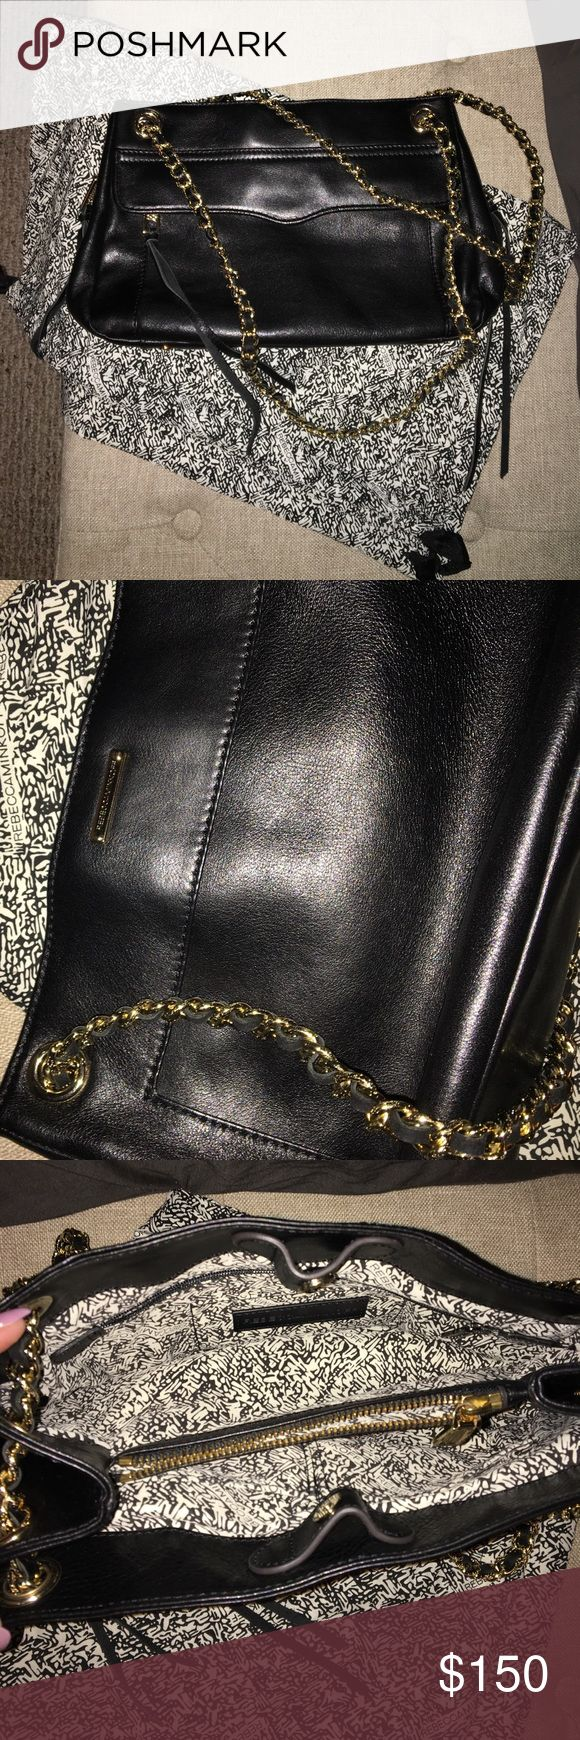 Rebecca Minkoff Swing Double Chain Purse Black Rebecca Minkoff purse (SWING double chain). Used once and like new. No scratches. Comes with original storage bag. See fourth photo for pocket organization on the inside. Has an outside pocket as well. Rebecca Minkoff Bags Shoulder Bags